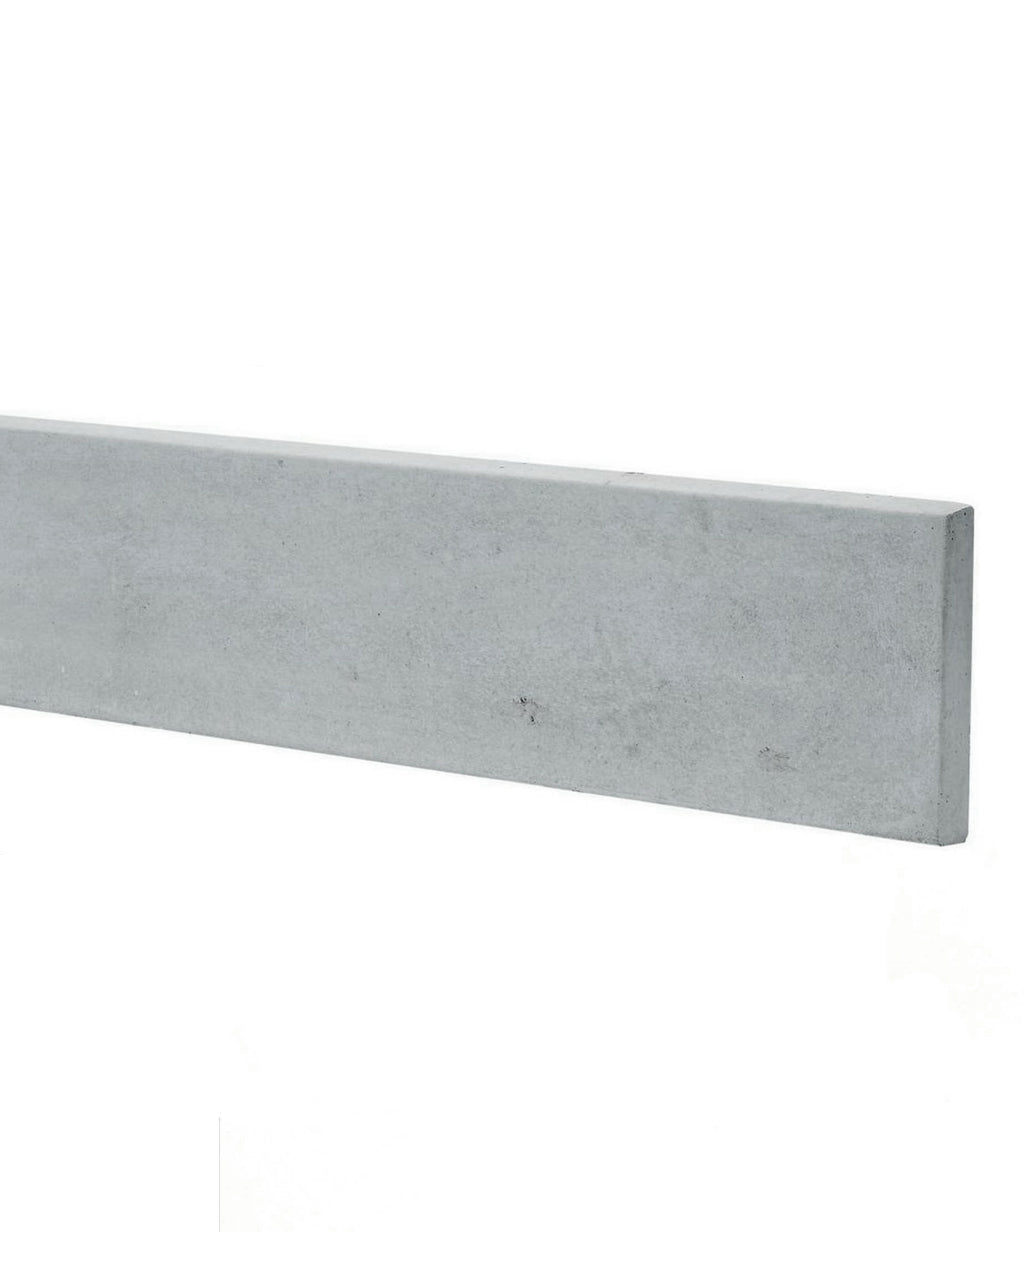 Plain Concrete Gravel Boards 12"